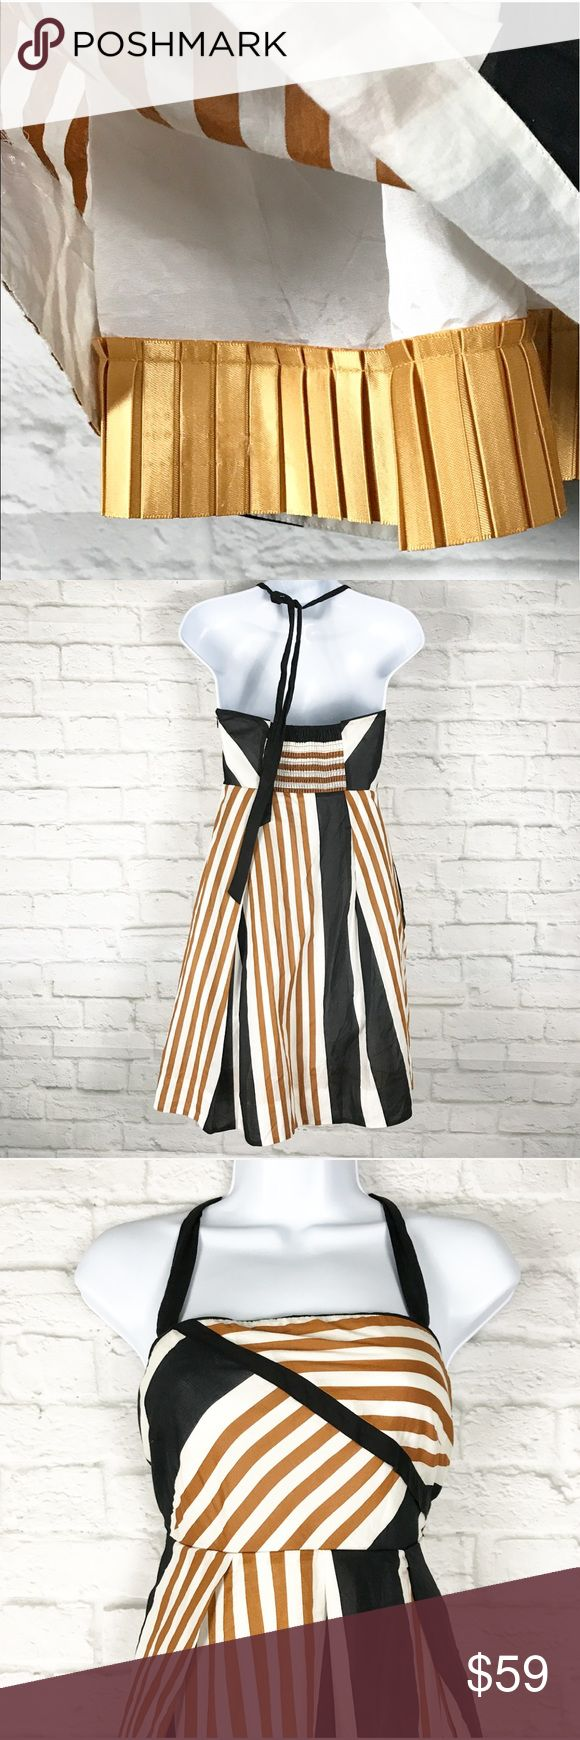 """ANTHROPOLOGIE Edges Angles dress Moulinette Soeurs Moulinette Soeurs Anthropologie Edges & Angles Dress Size 0  100% Cotton with 100% Acetate lining Black, White, and Bronze angled stripes Halter strap ties around neck Side zip Smocked back Lining has pleated gold hem  Retail $148  Perfect  Measurements, laying flat:  Bust, along top hem: 14.5"""" Waist, along seam: 13.5"""" Length (top underarm seam to bottom hem): 27"""" Anthropologie Dresses"""